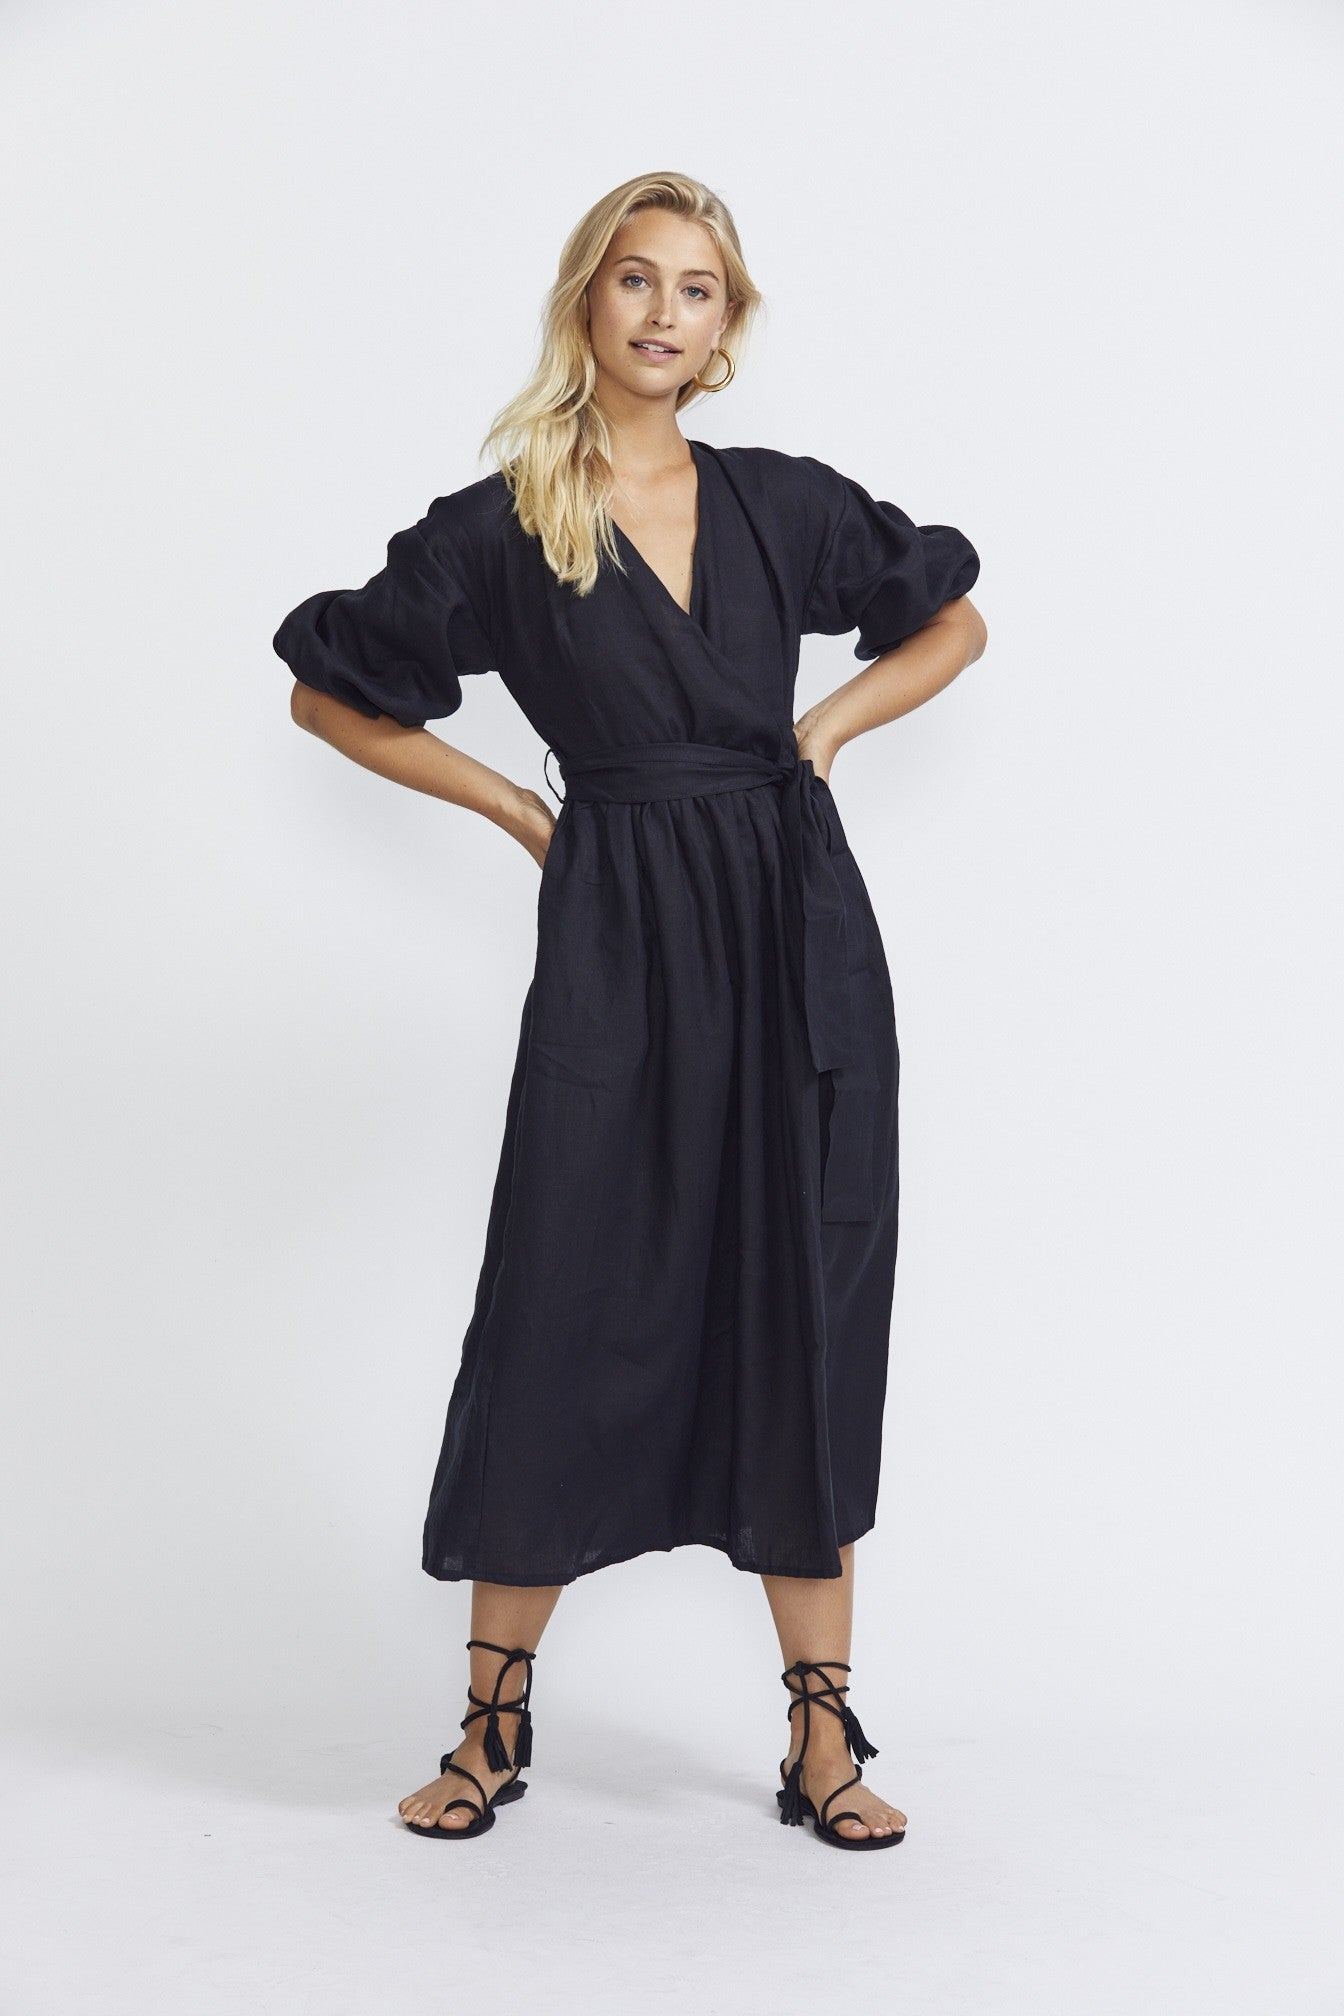 ÉSS THE LABEL The Crystal Wrap Dress - Black